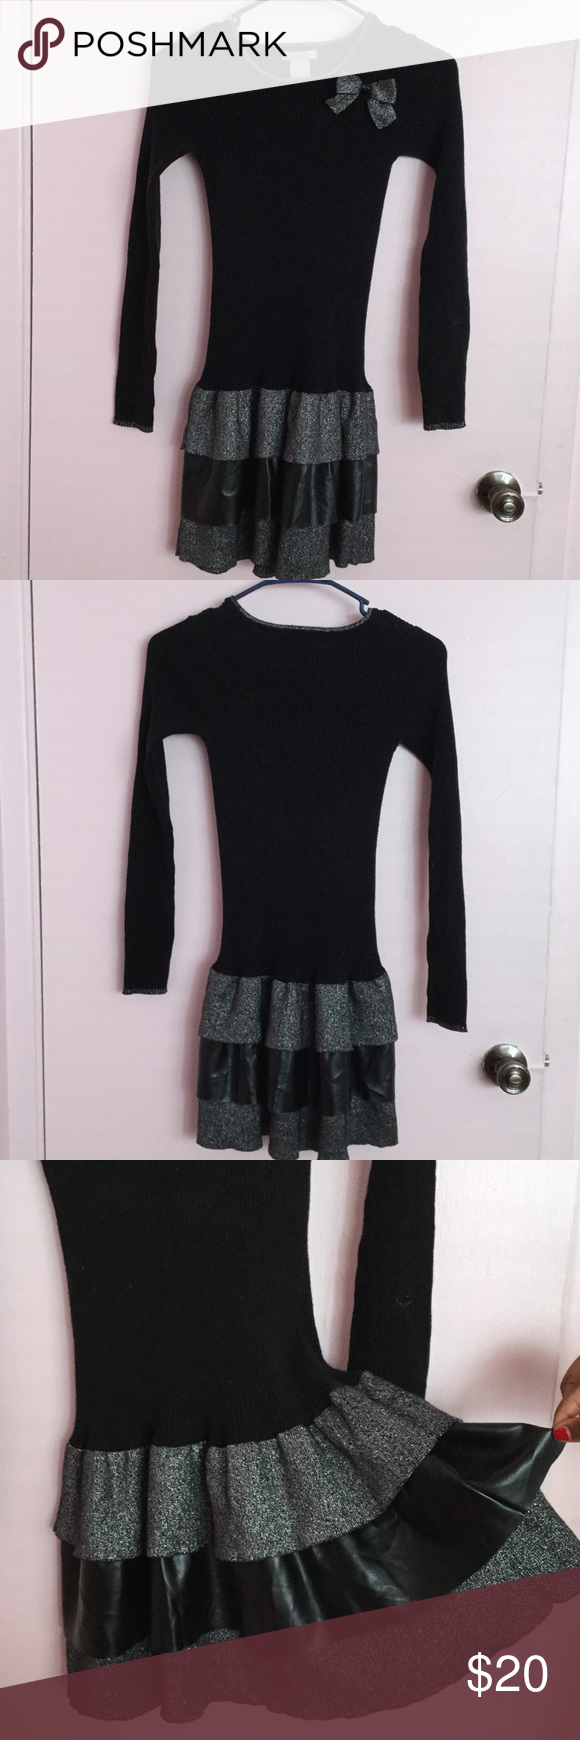 Black Knit Tier Dress Girls -Size 14 Black 3 Tier Girls Dress Size 14.  Three Tier has a second Tier with metallic-like Fabric.  Dress is ready for shipment.  I was in cold water and it's ready to wear. Dresses Formal